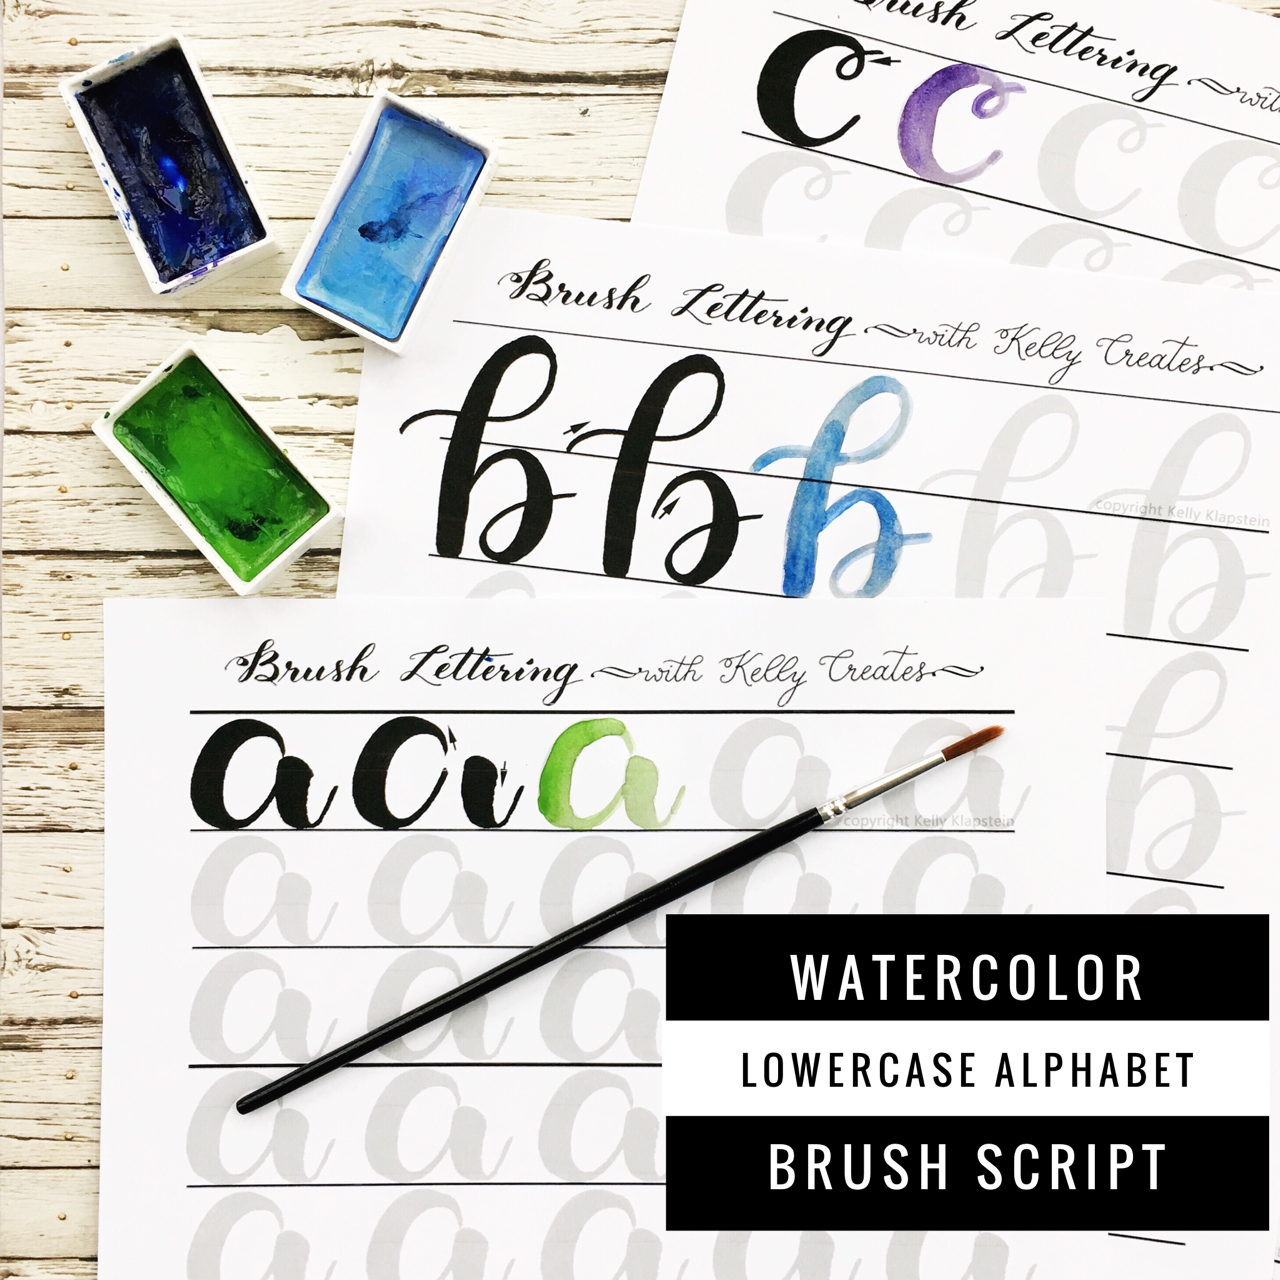 Watercolor Brush Lettering Alphabet Amp Drills L